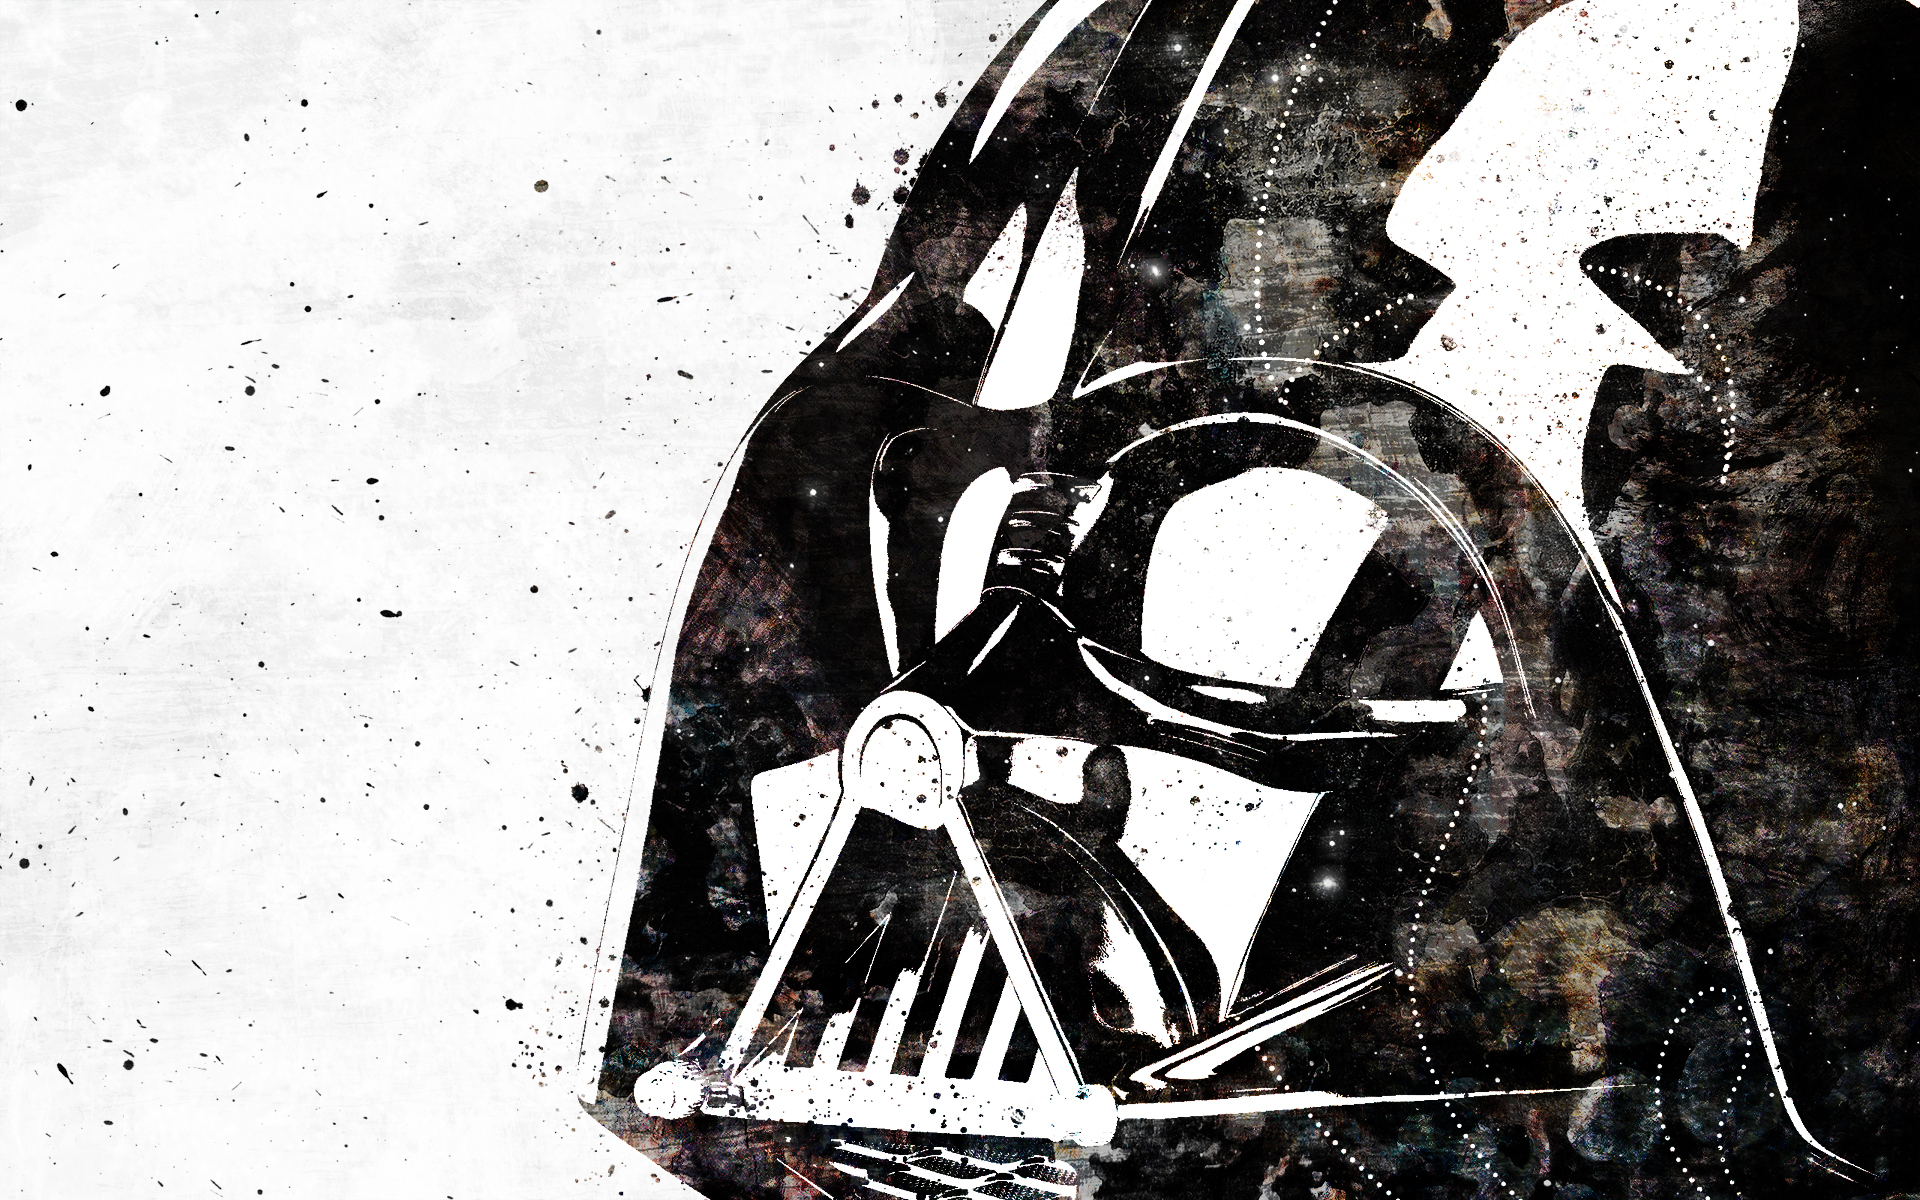 Darth Vader by icantfindone